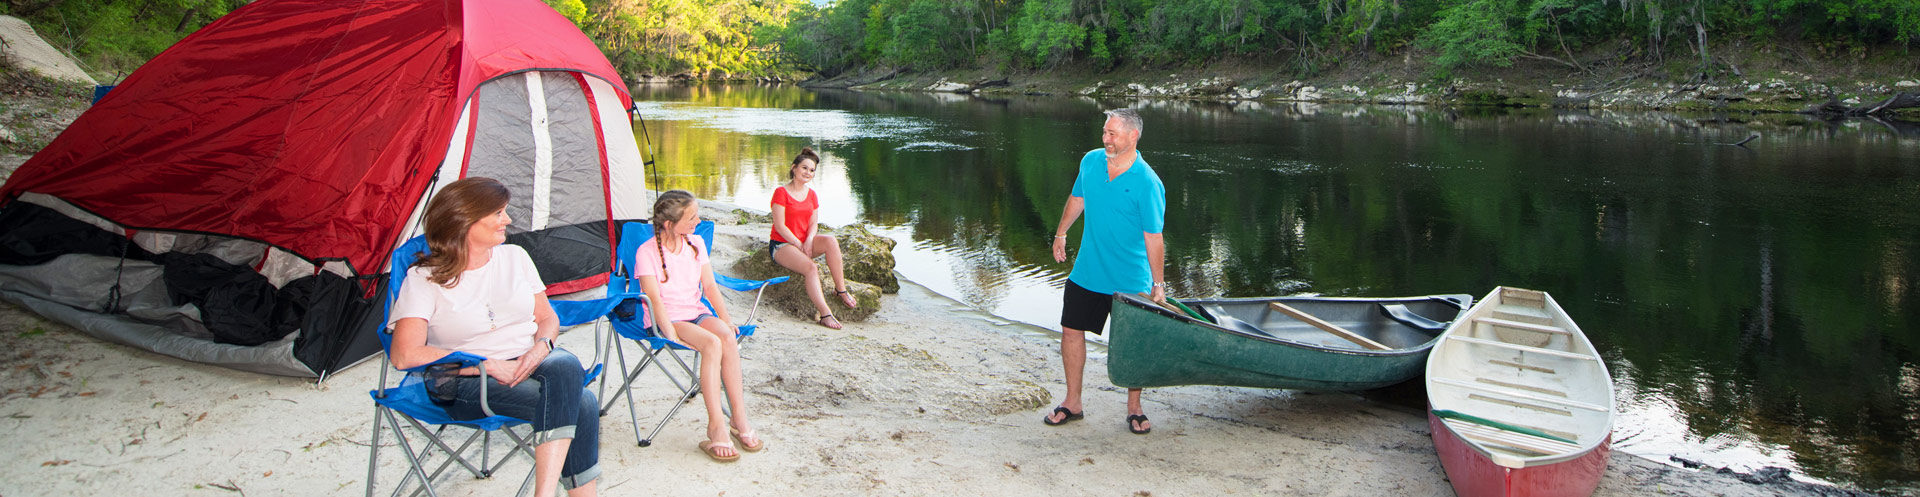 family at campground in suwannee county with tent and kayaks